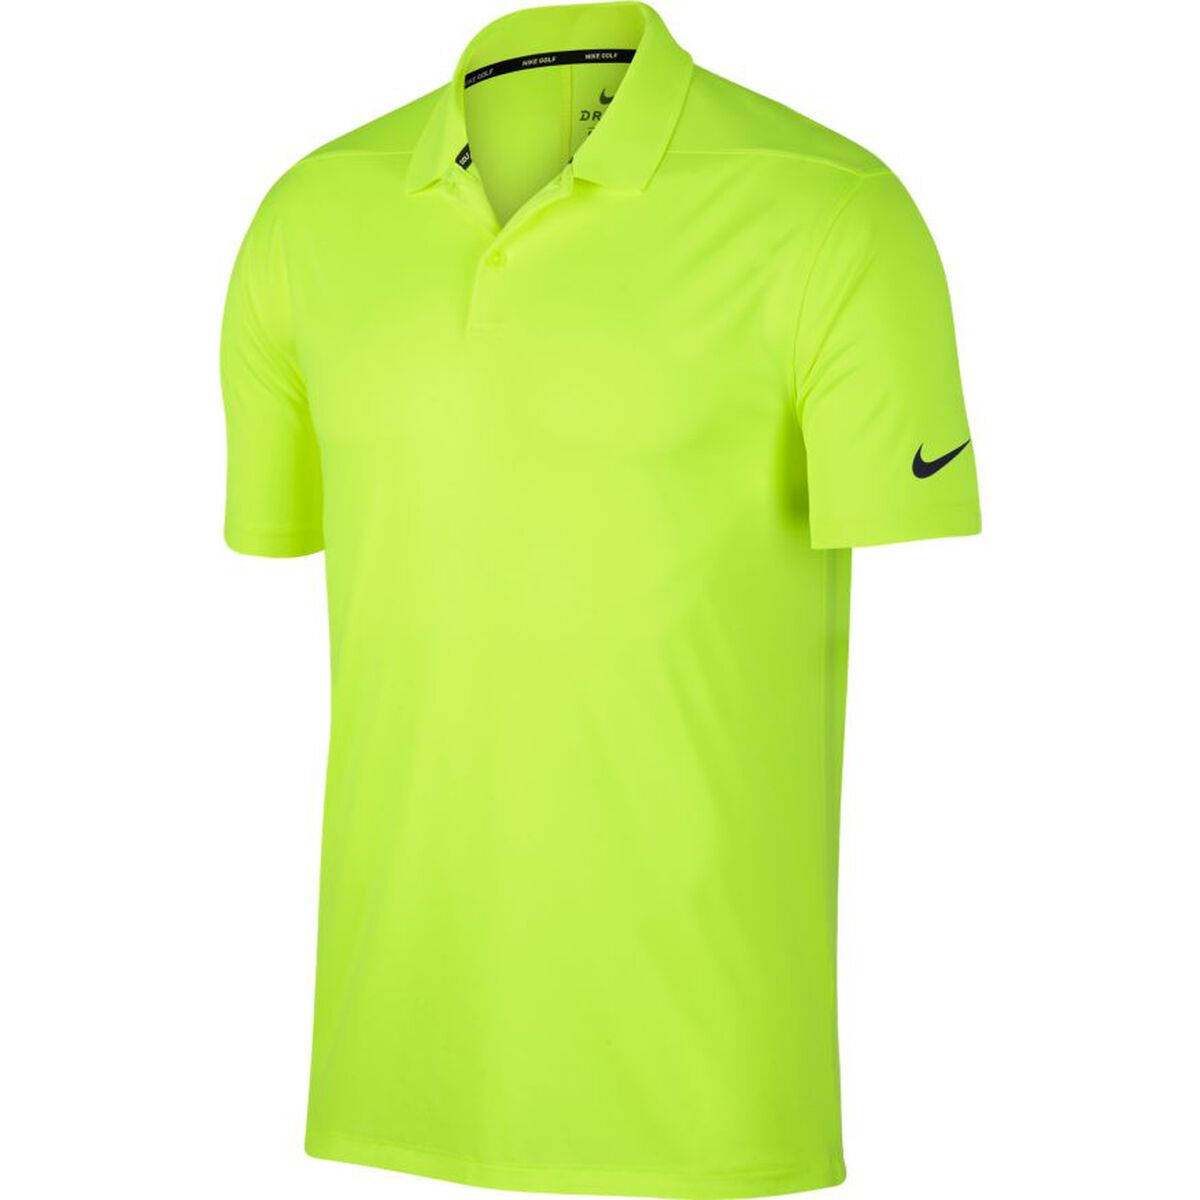 55a4d2f5a Images. Nike Dry Victory Golf Polo